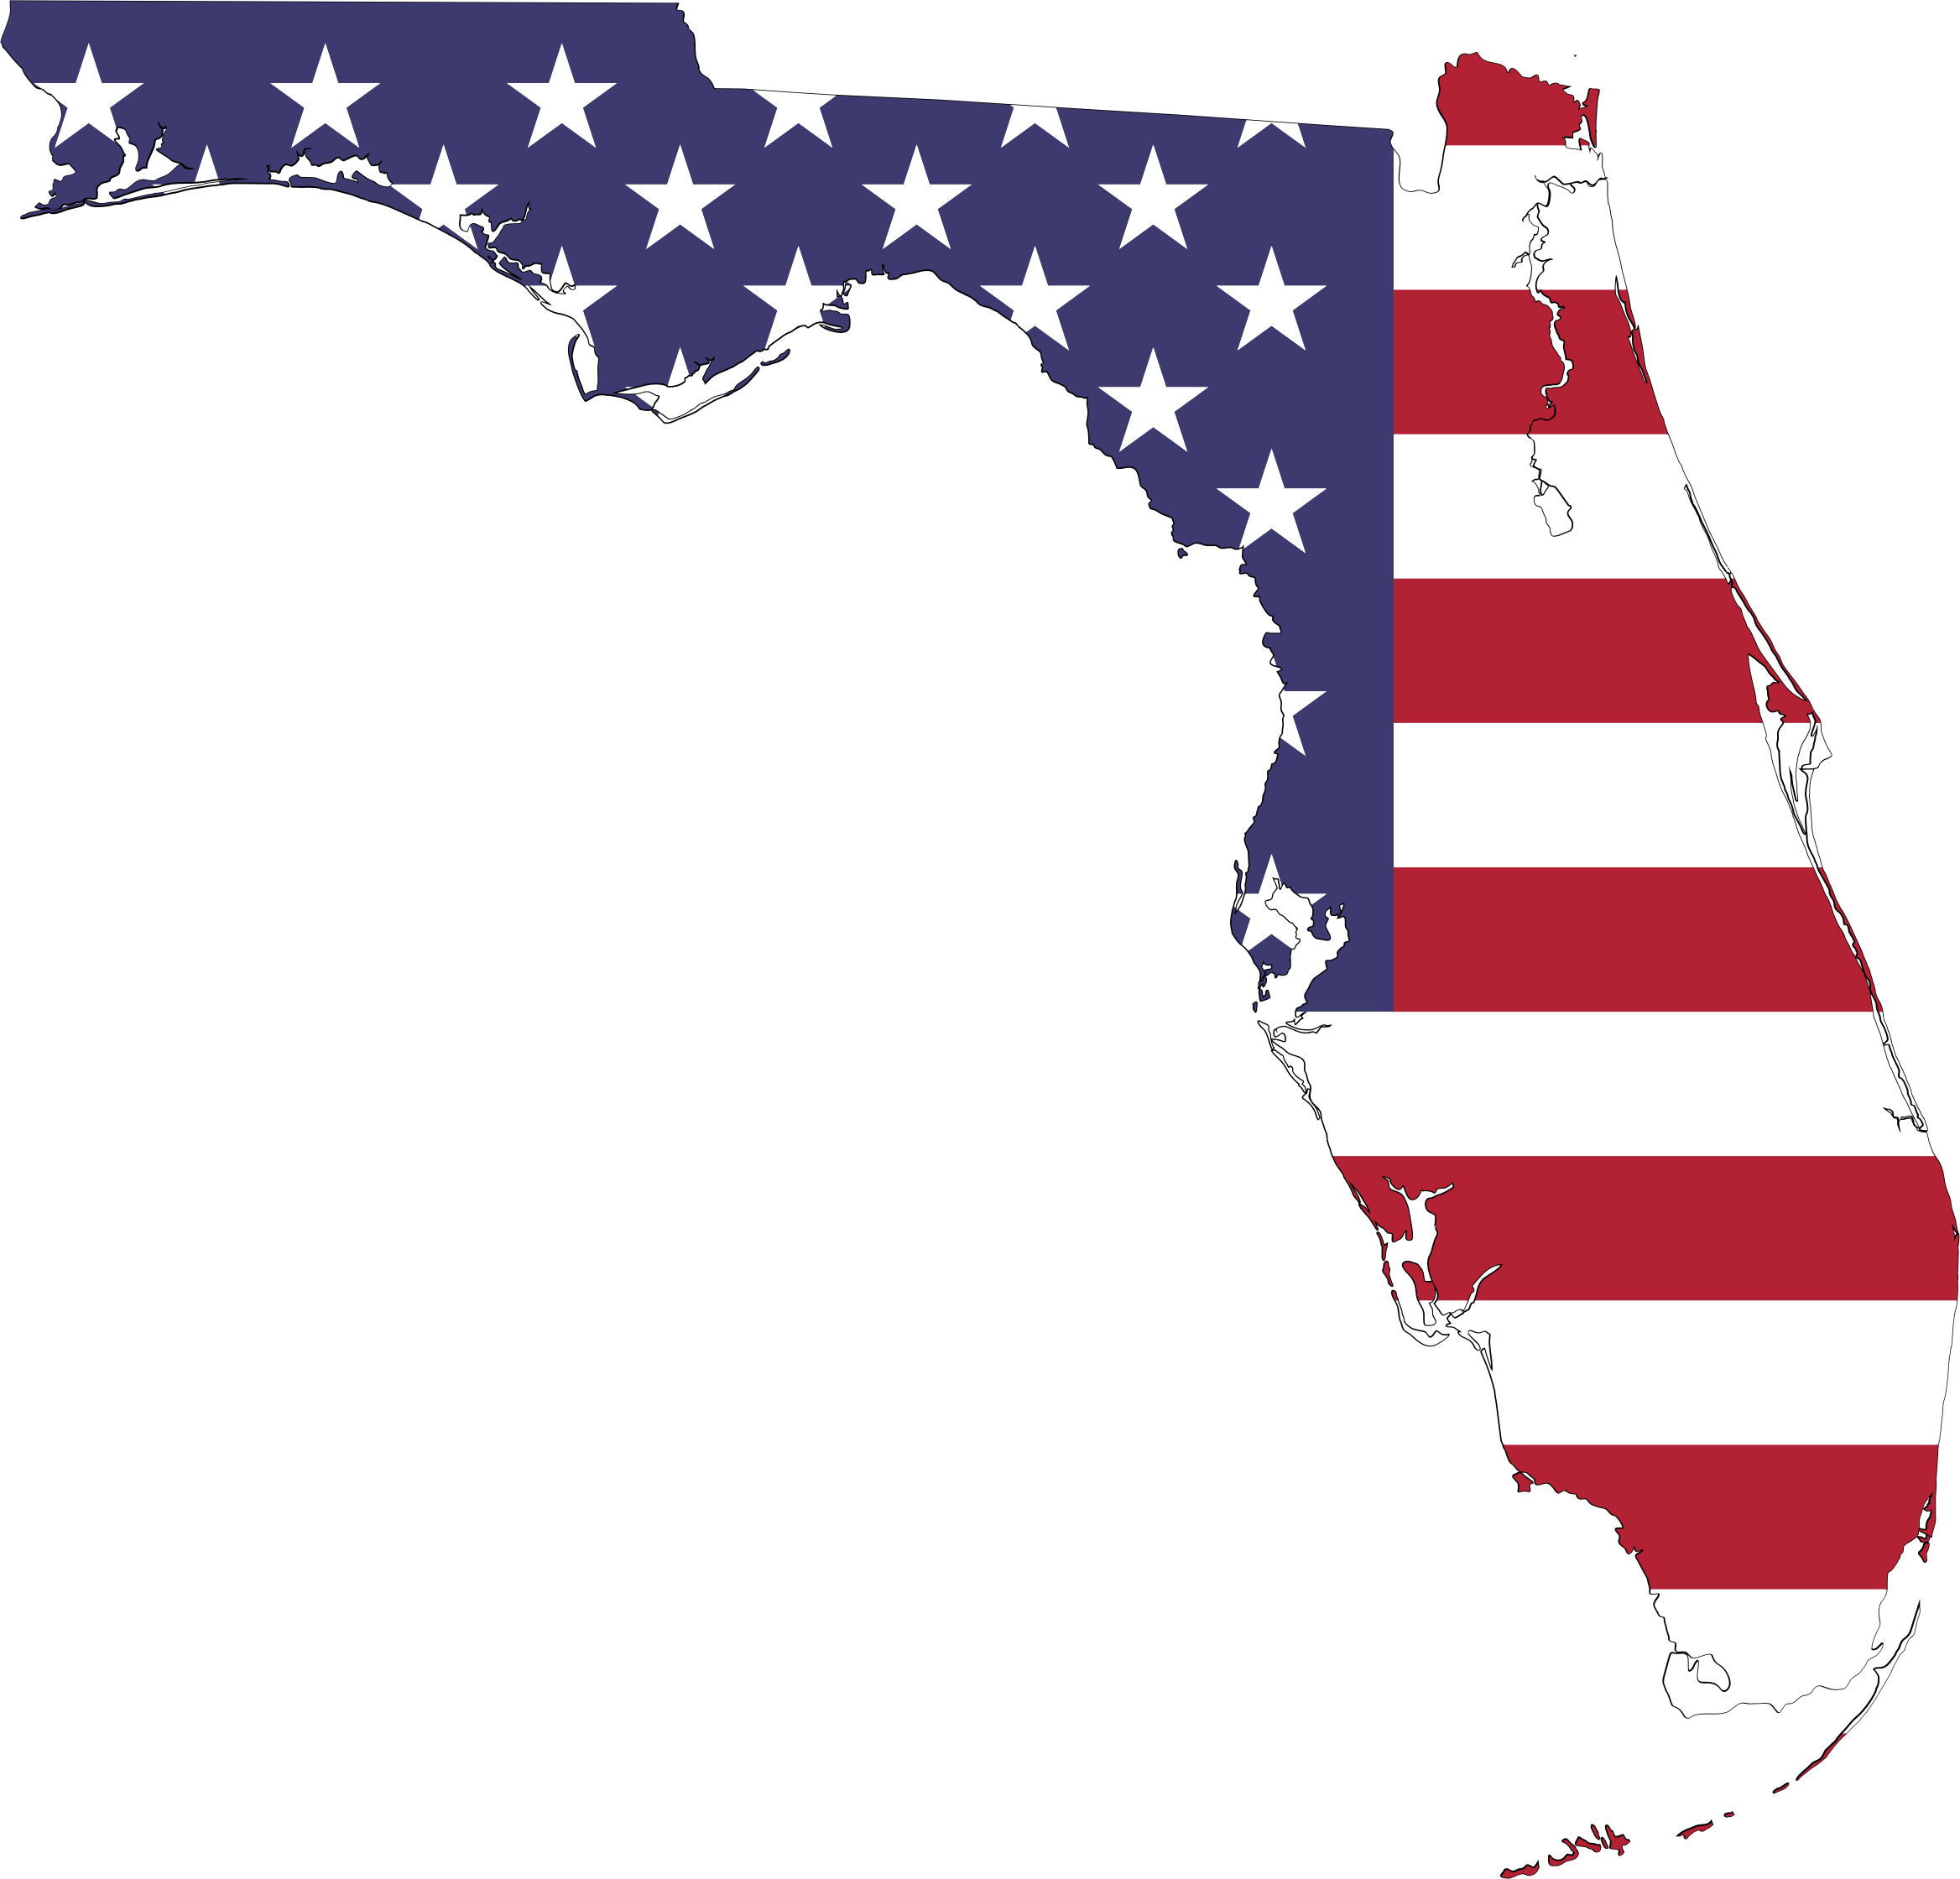 Florida America Flag Map With Stroke by GDJ